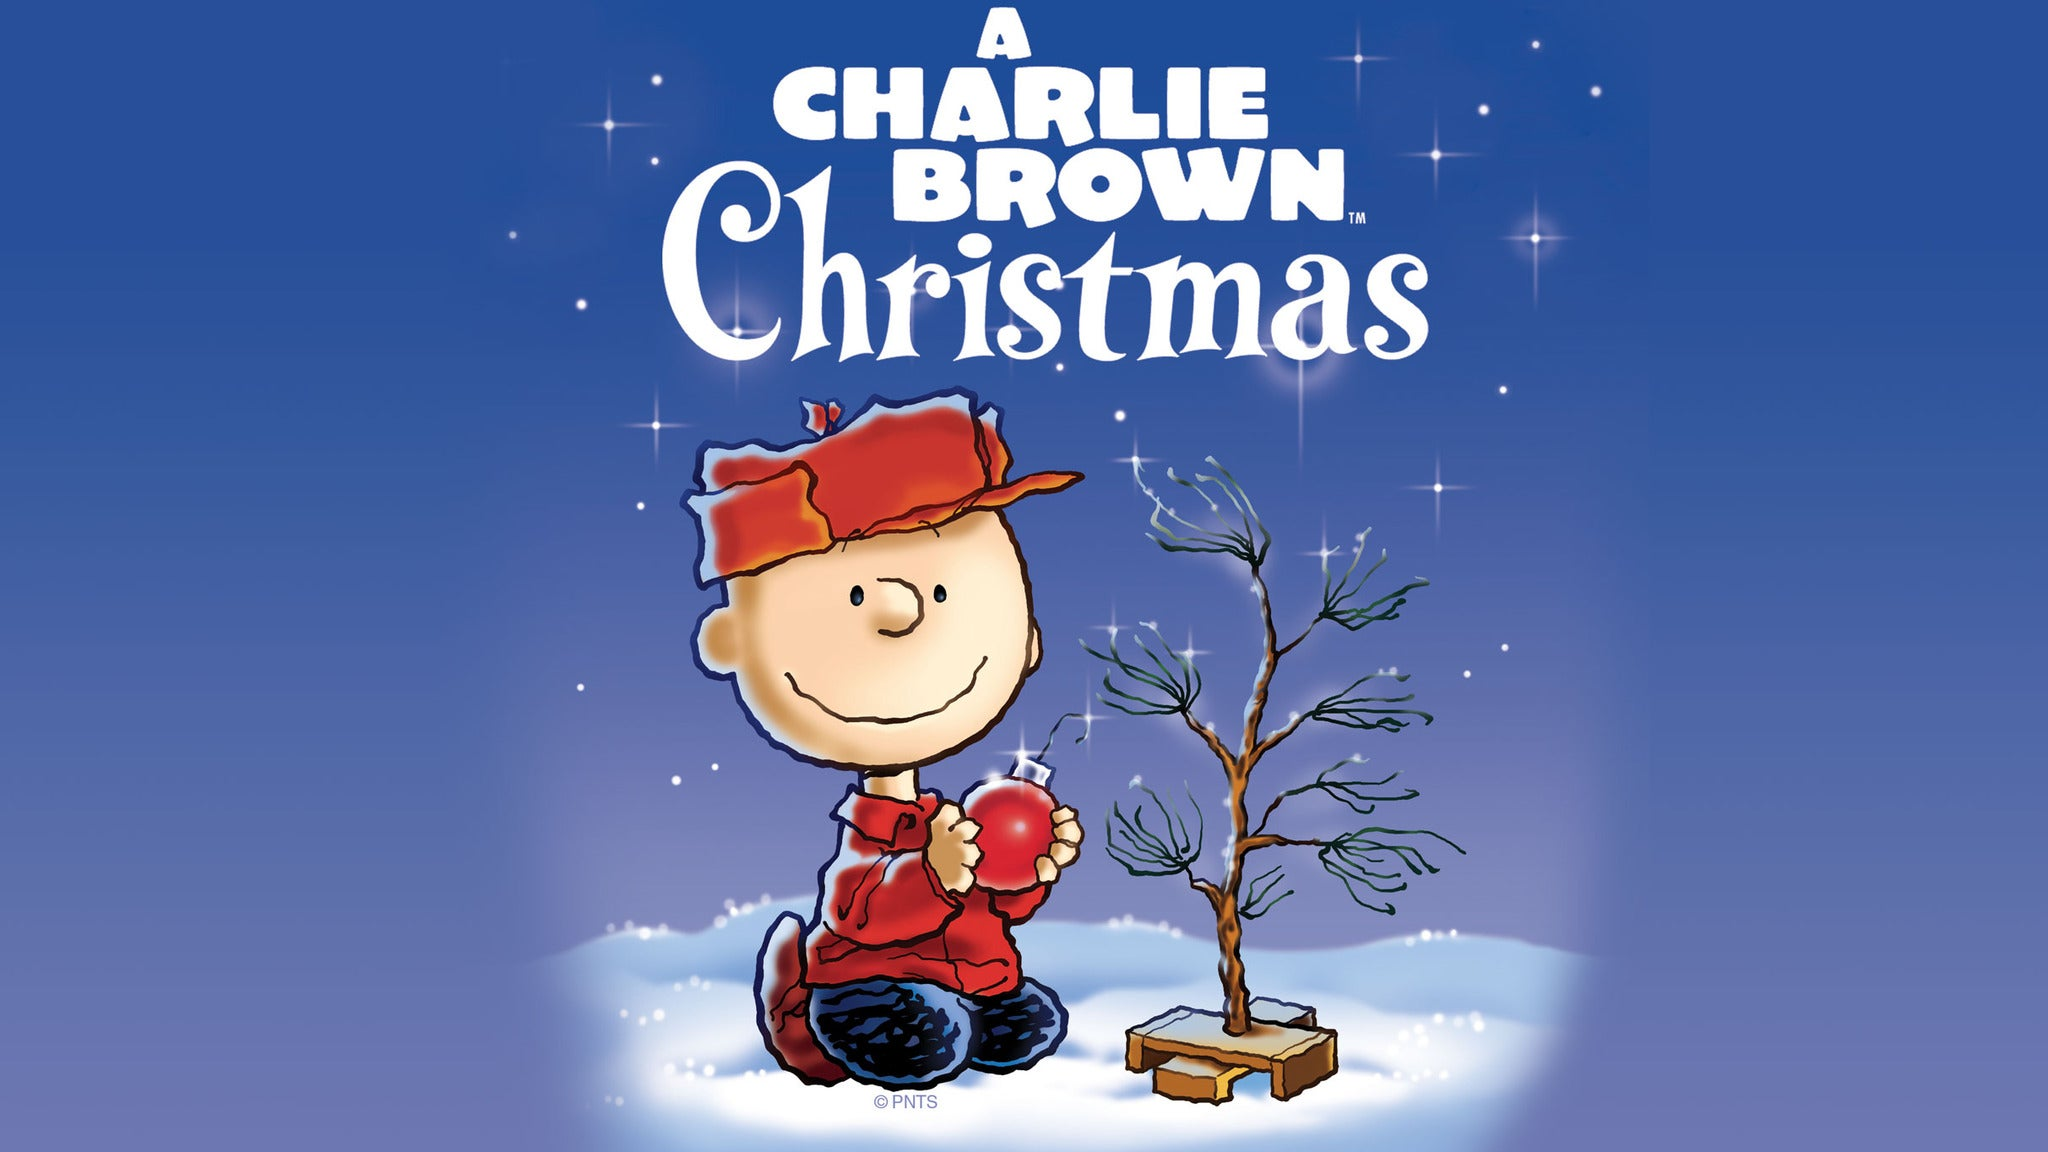 A Charlie Brown Christmas at The Wellmont Theater